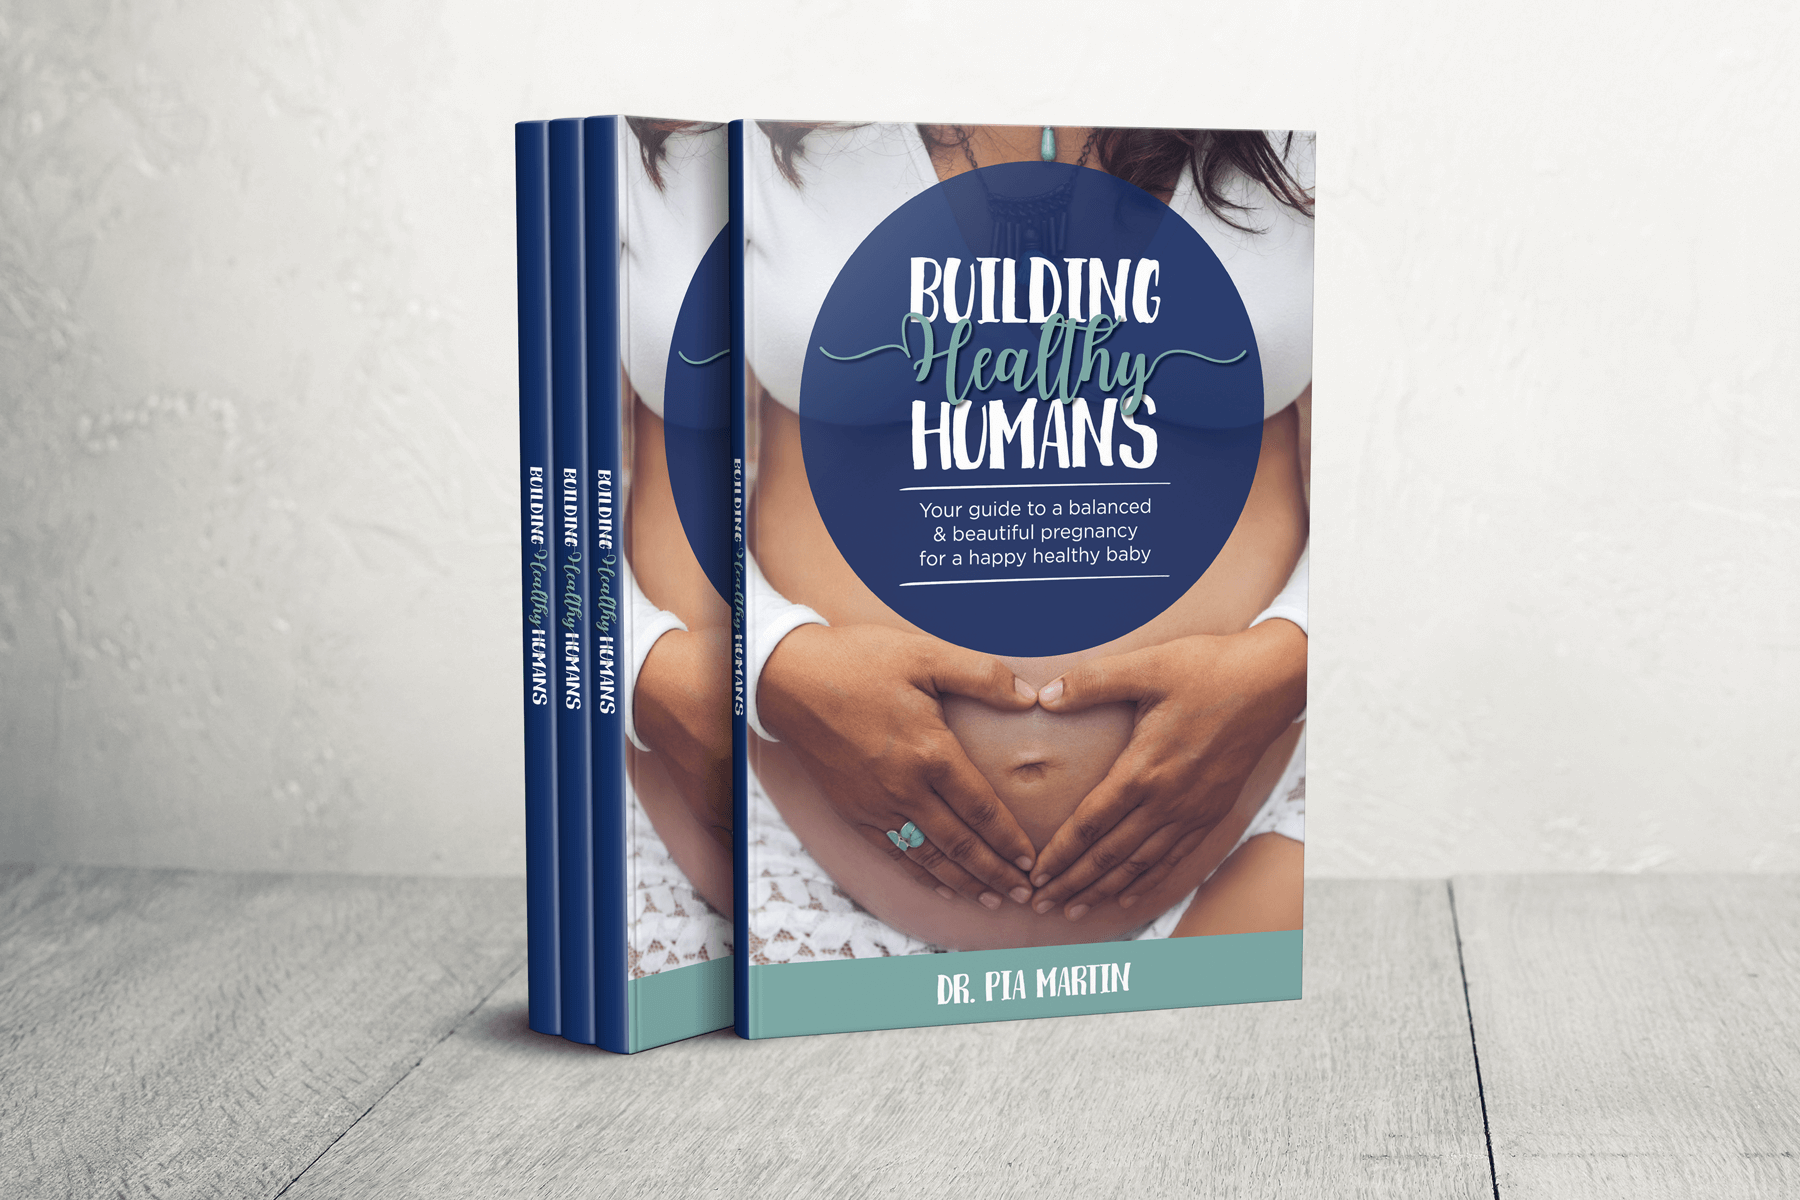 Book Cover Design for Building Healthy Humans